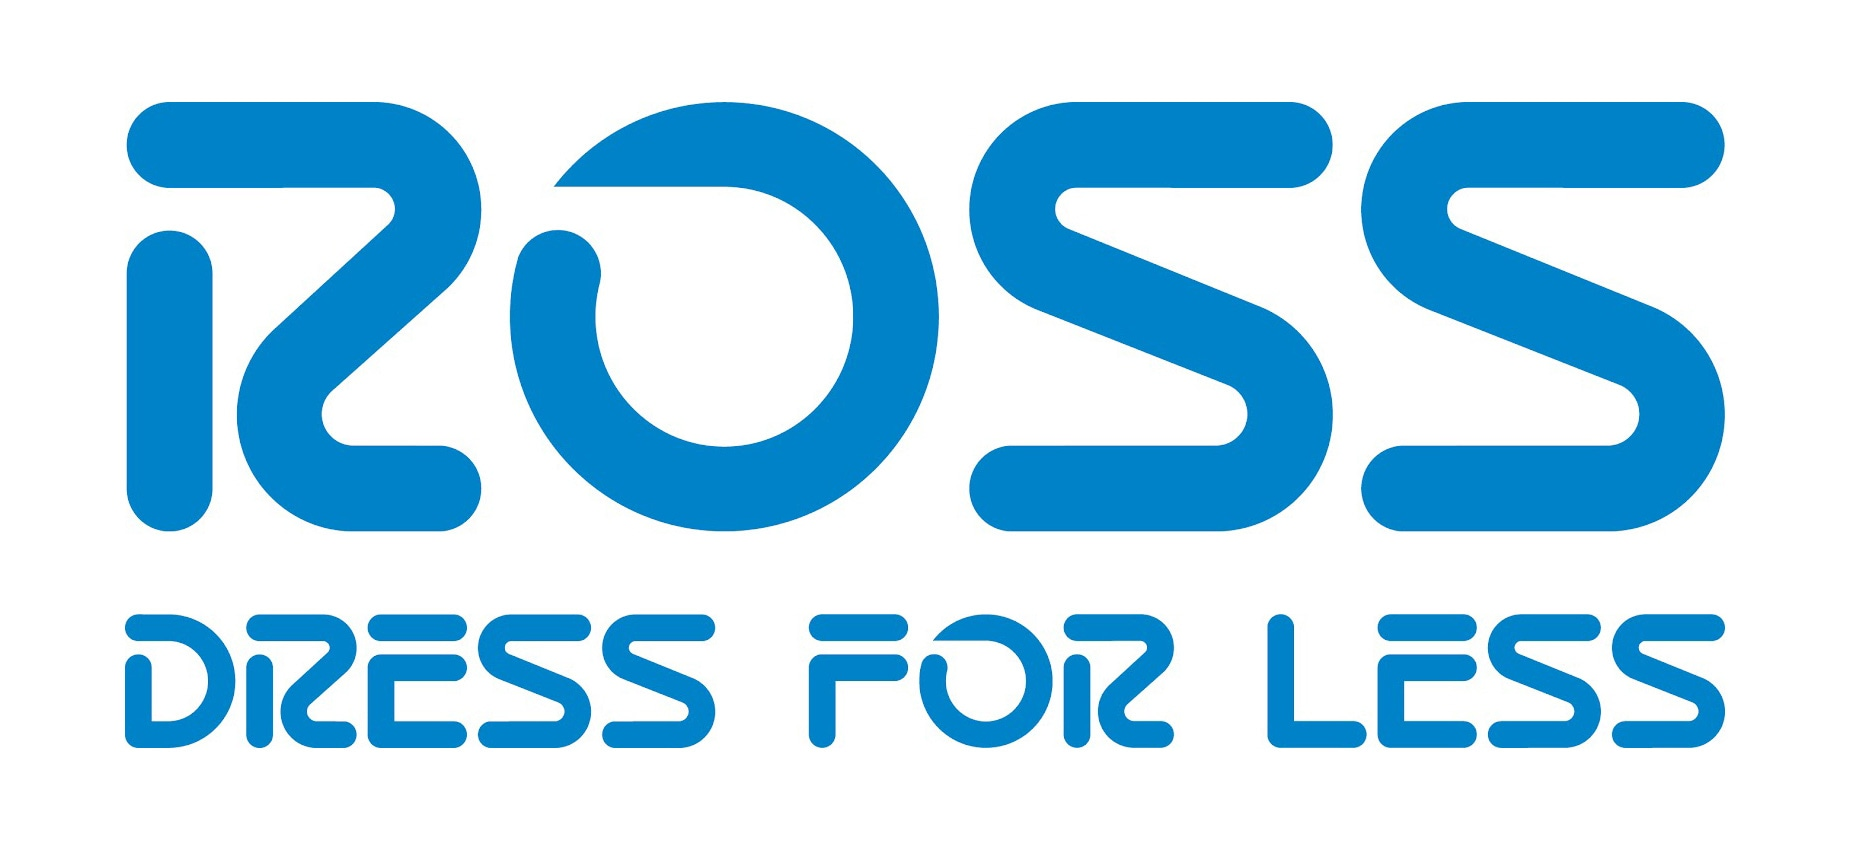 Ross coupon codes